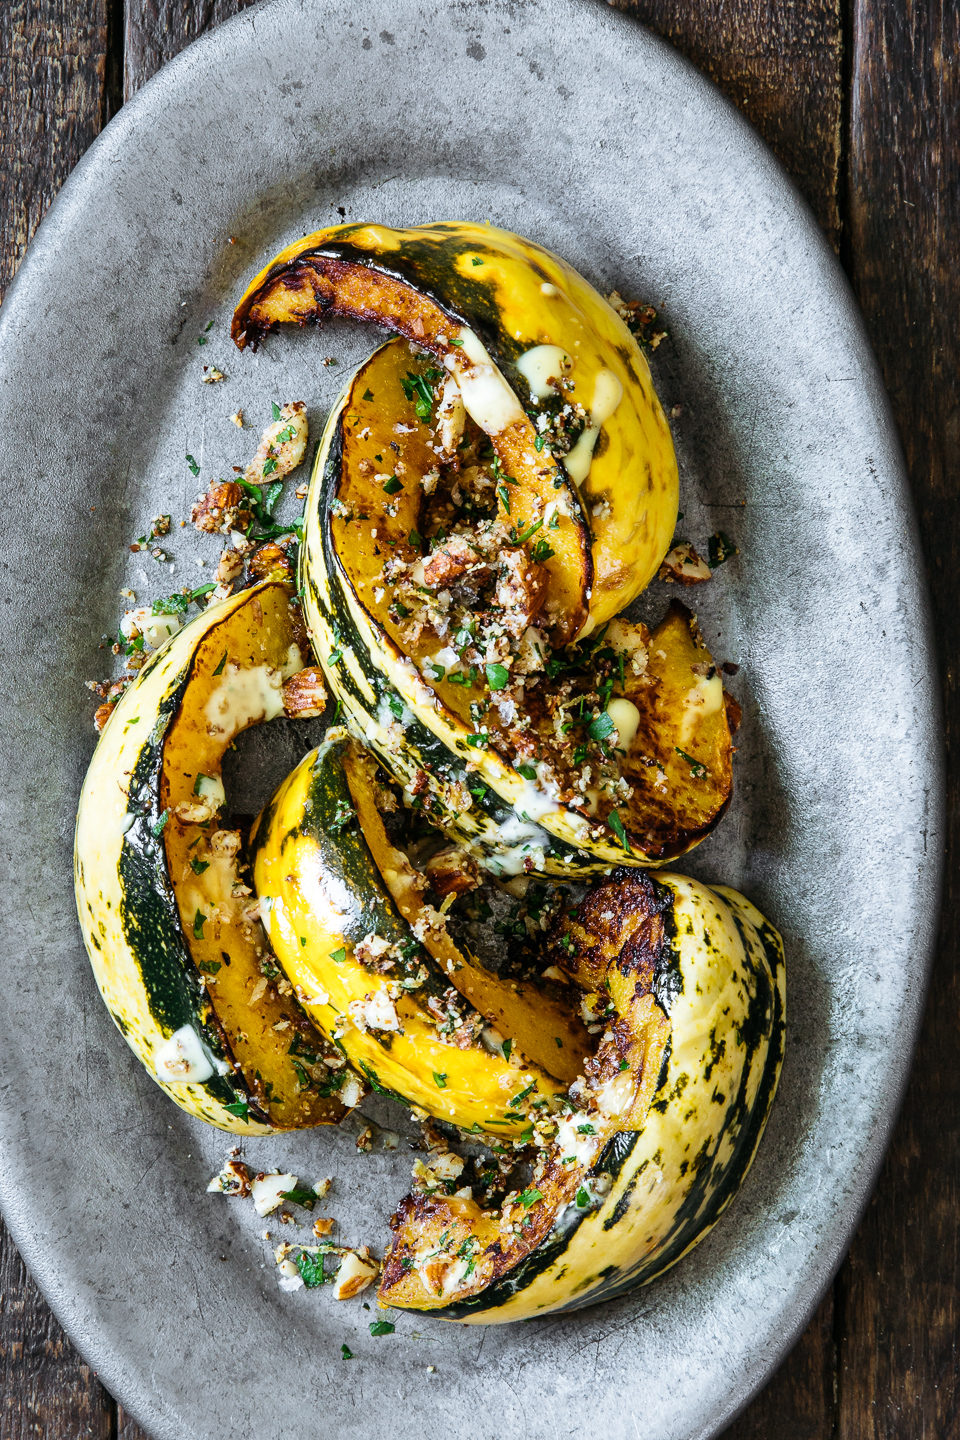 Roasted Acorn Squash with Almond Picada